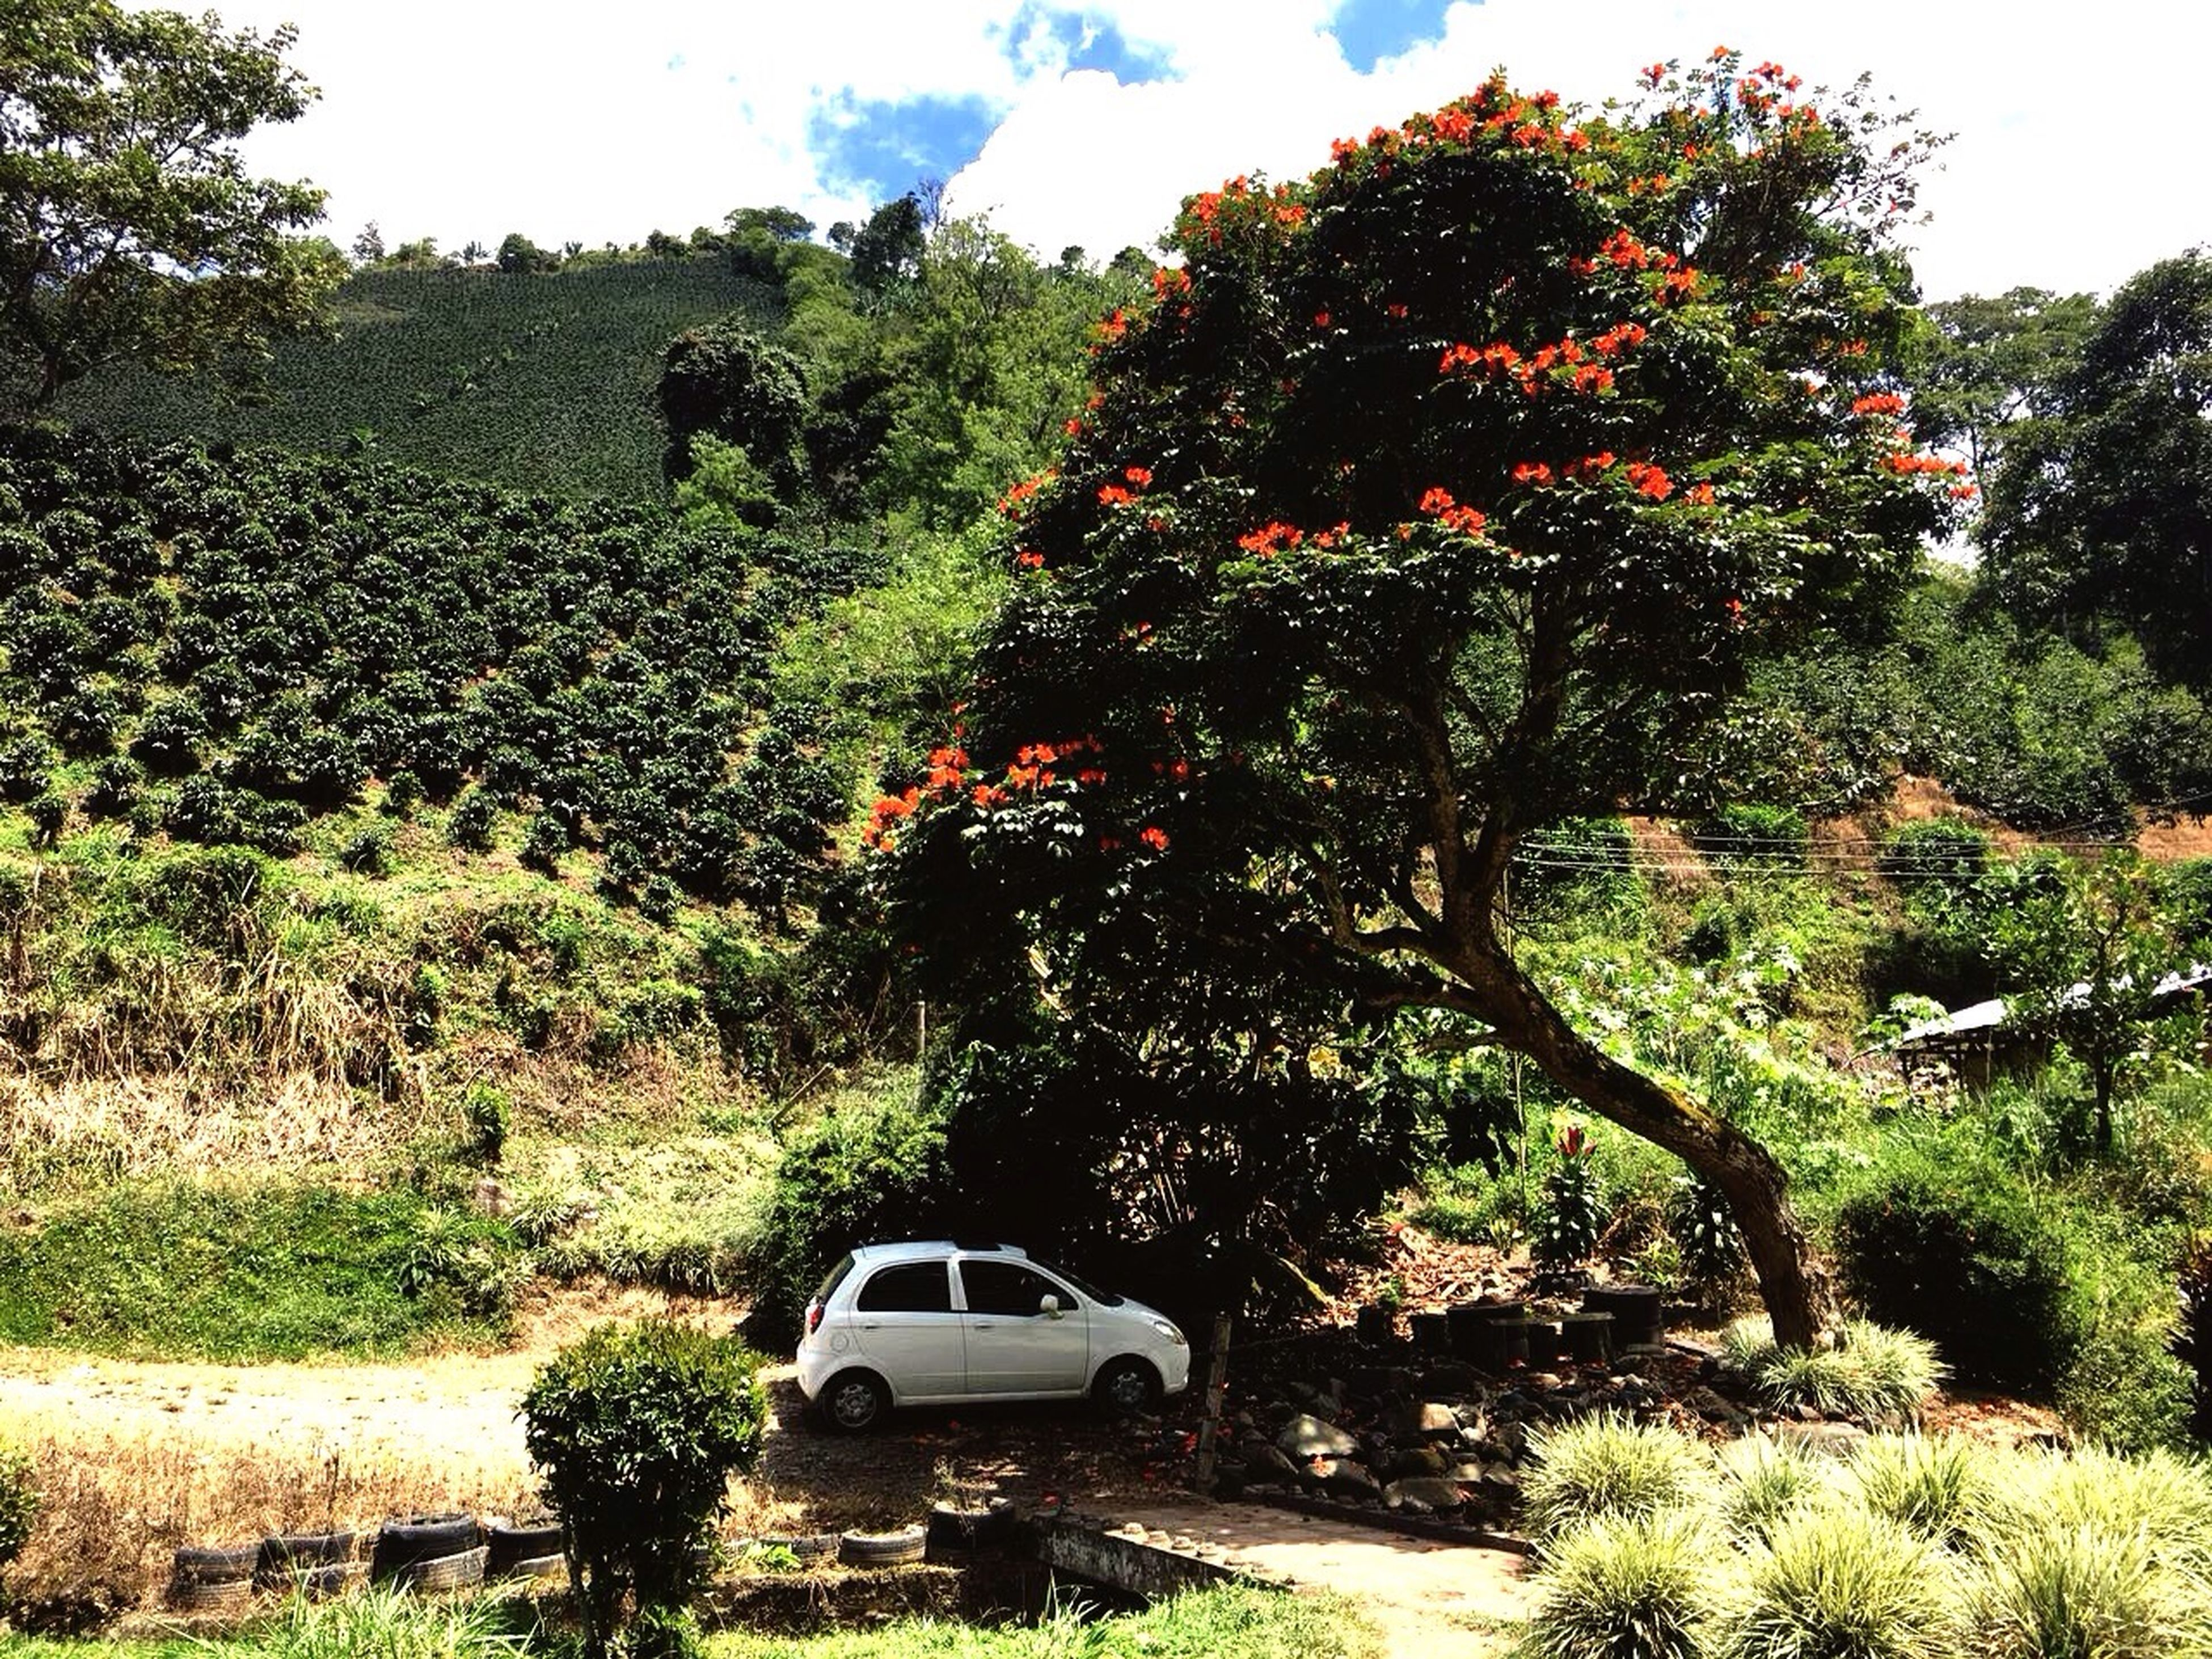 Finca cafetera ☕️ Tree Car Growth Nature Day Plant No People Outdoors Beauty In Nature Sky EyeEm Selects Fotooftheday IPhoneography 3XSPhotographyUnity EyeEm Gallery Taking Photos IPhone Photography Día De Campo Finca Cafetera Tranquil Scene Paisaje Natural Paisaje Cafetero Paisajes únicos